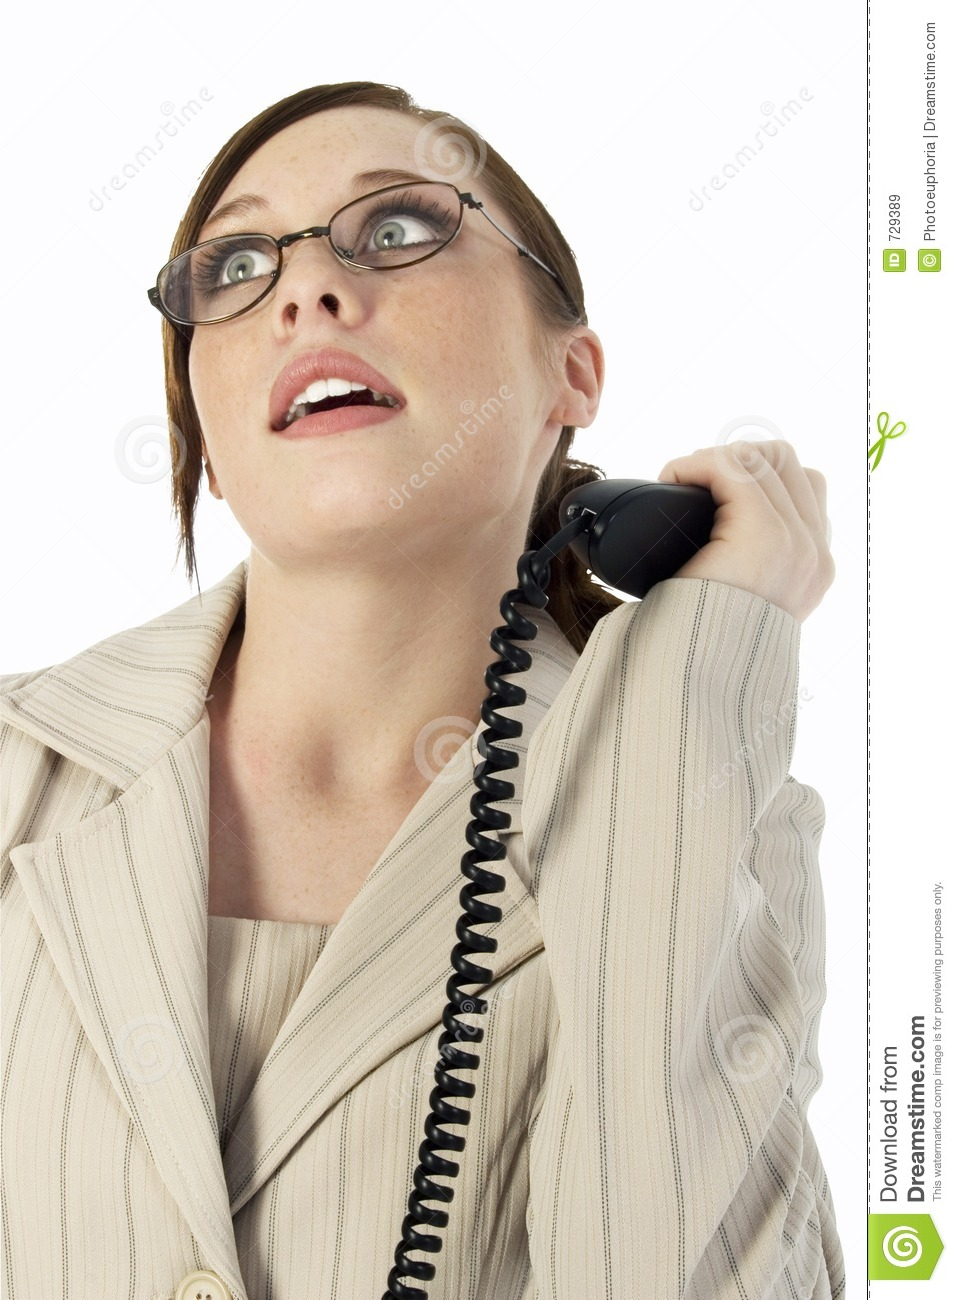 Business Woman Frustrated With Phone Call Stock Image